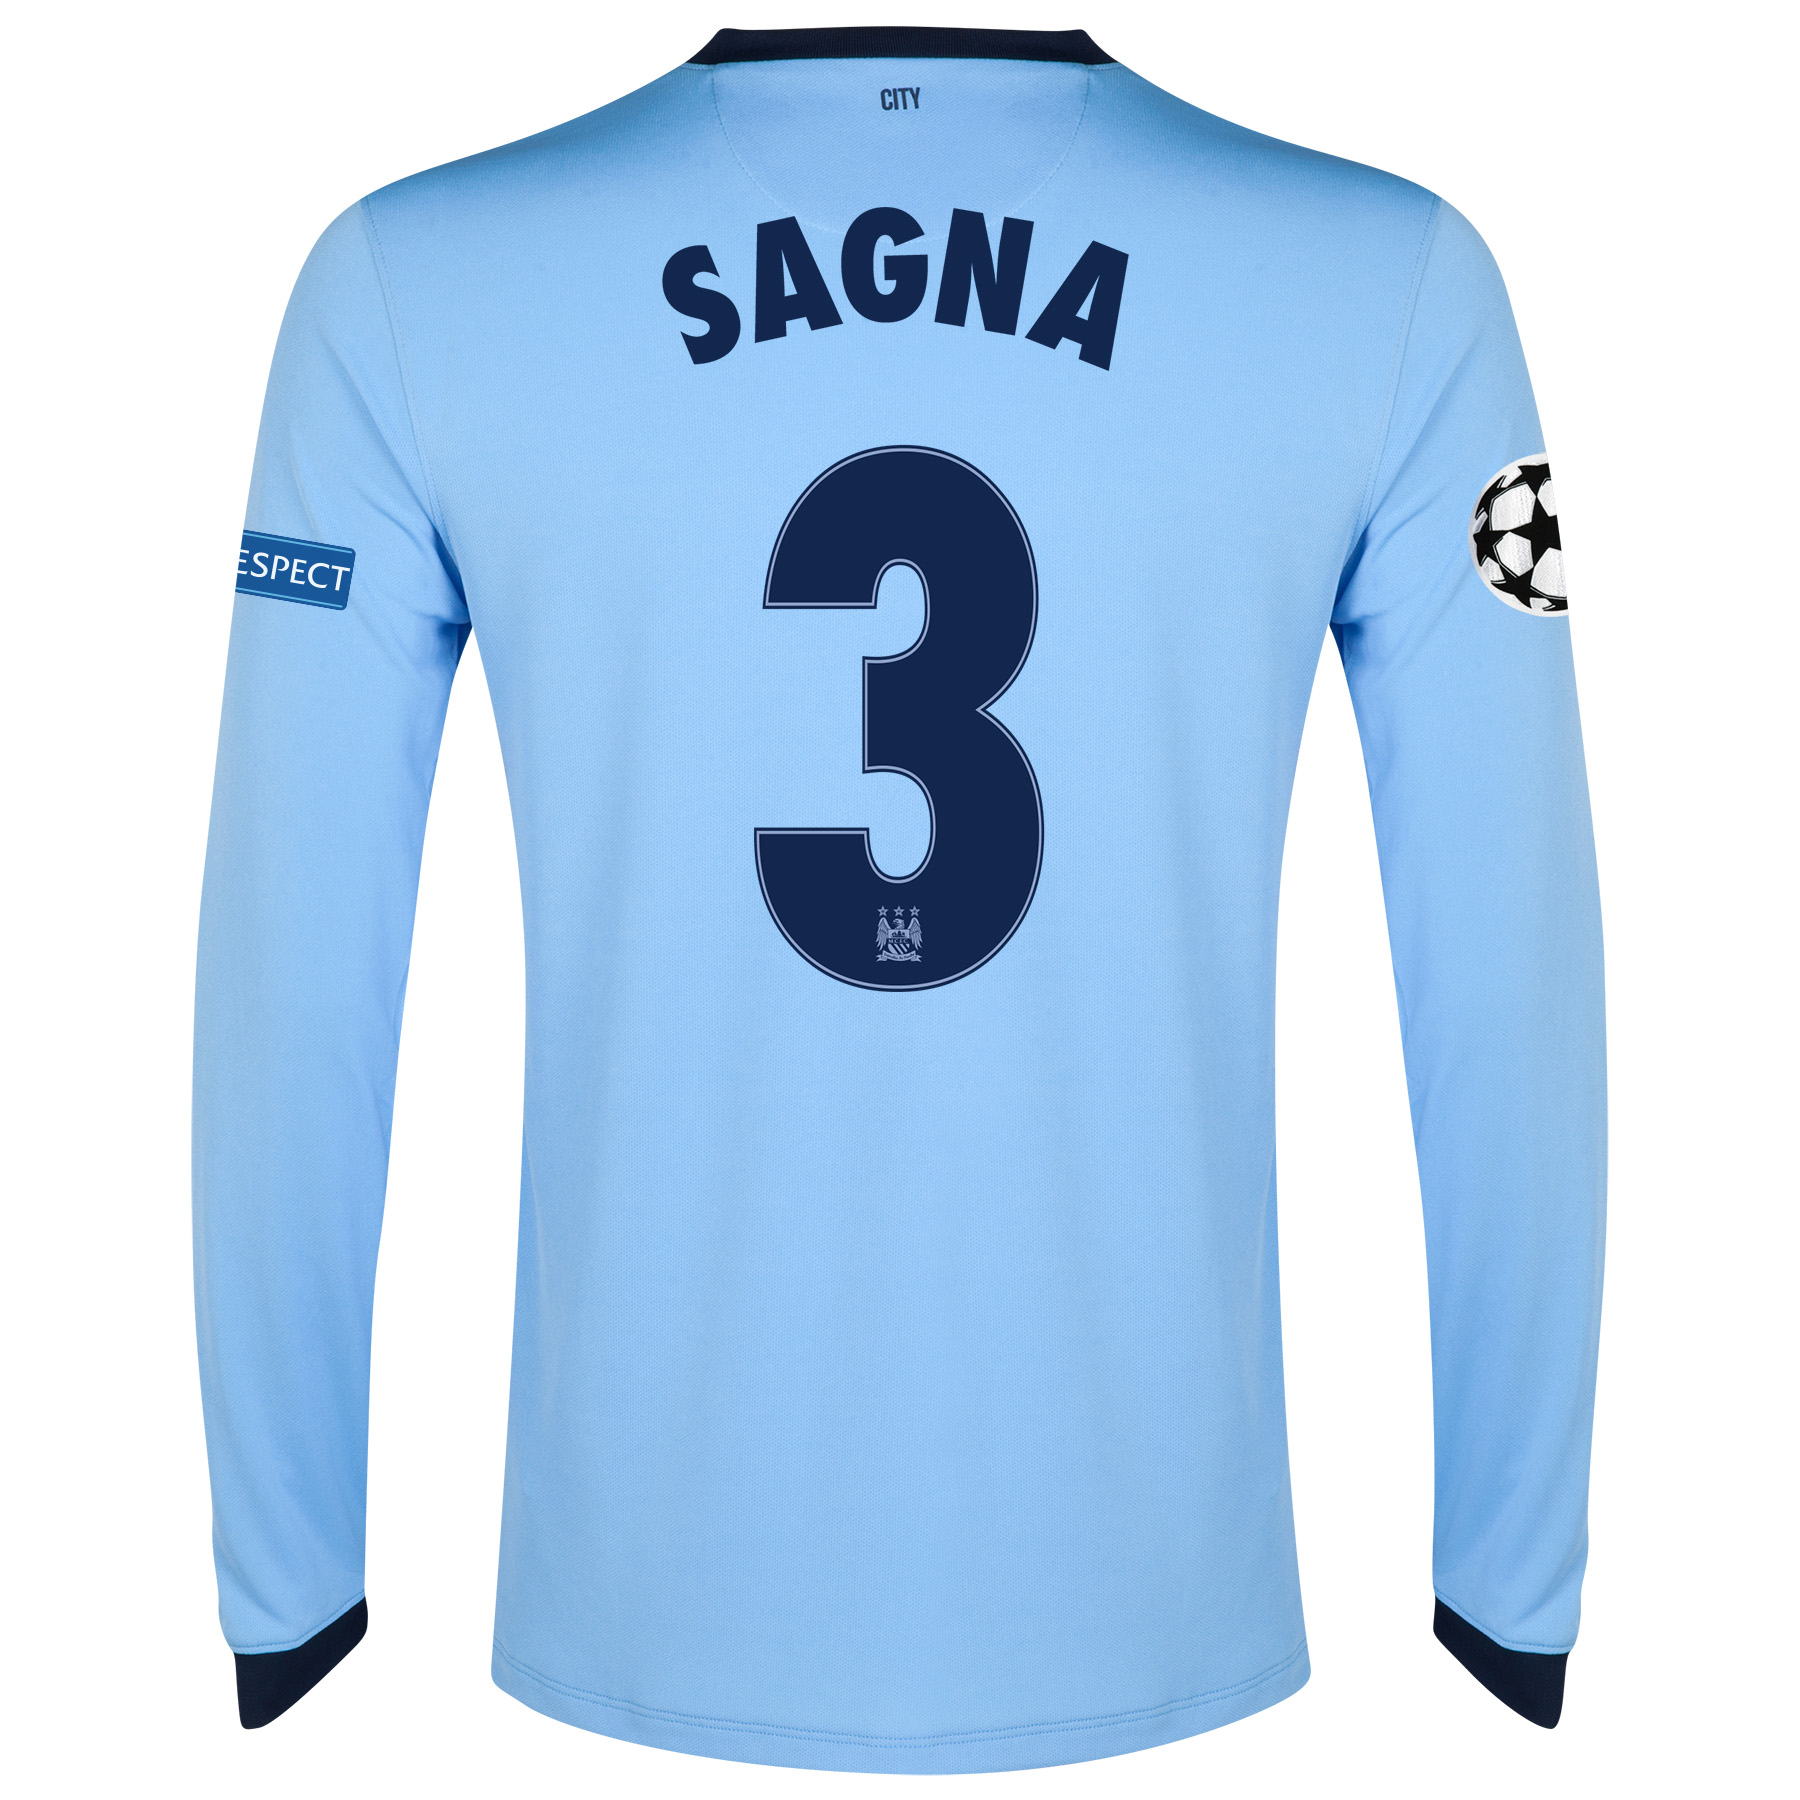 Manchester City UEFA Champions League Home Shirt 2014/15 - Long Sleeve - Kids Sky Blue with Sagna 3 printing